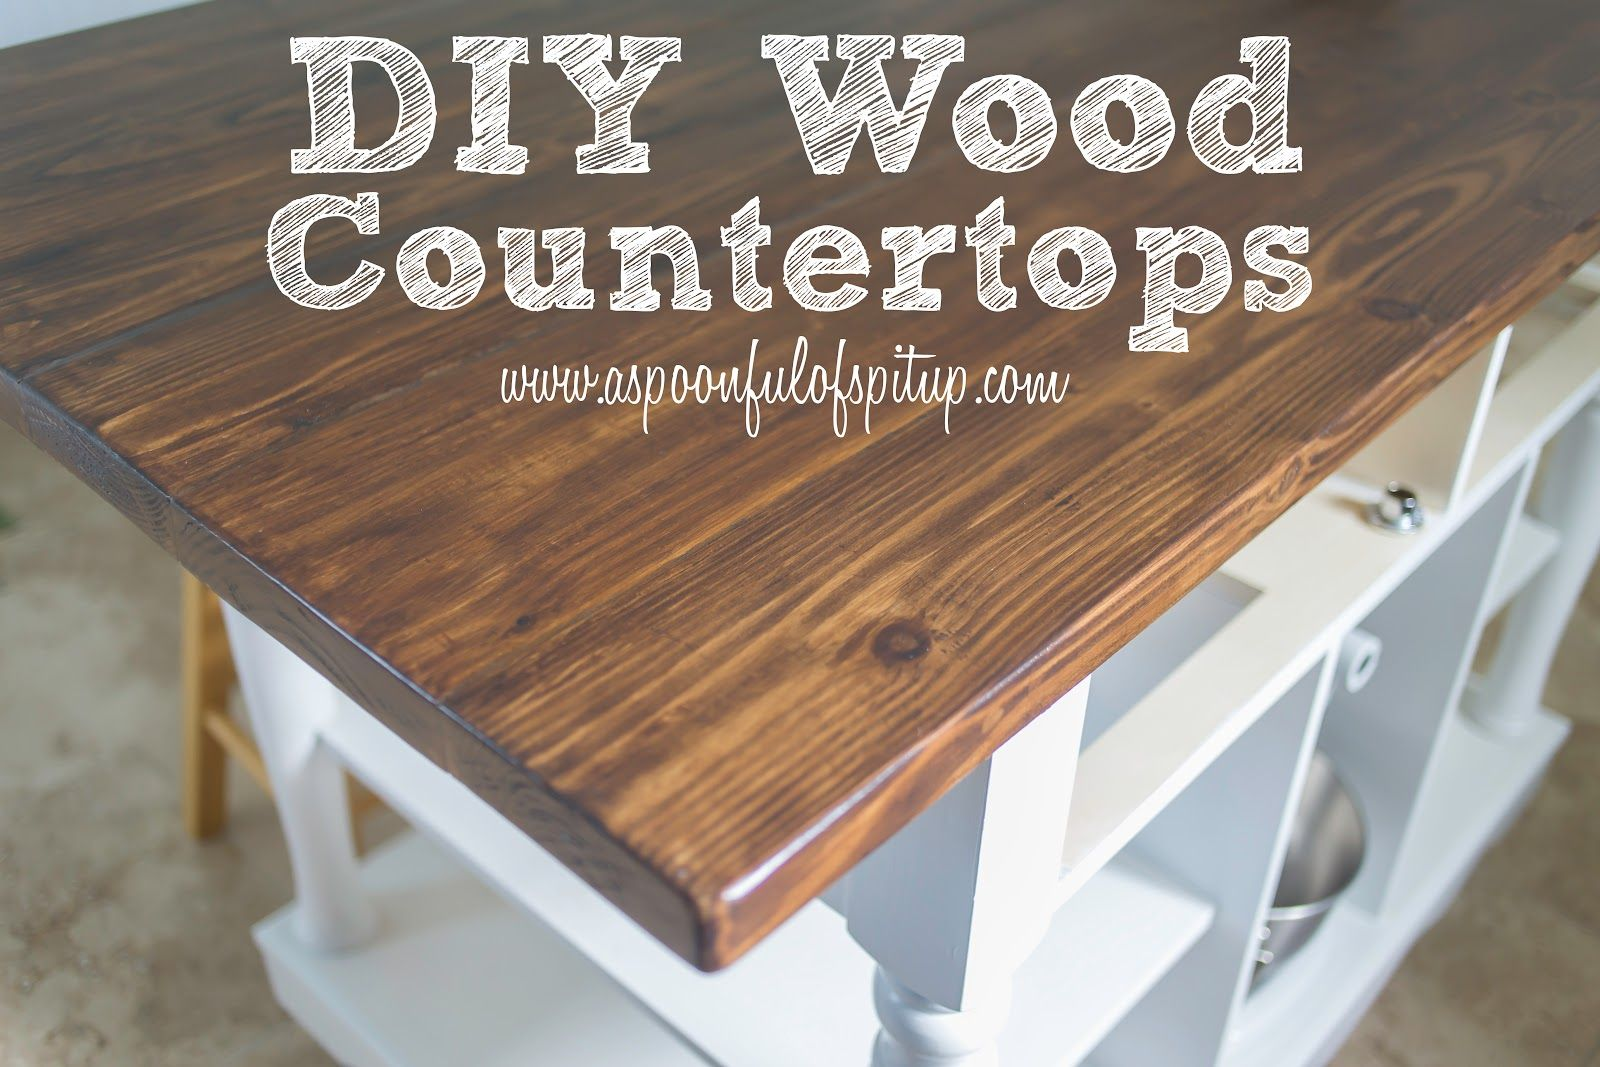 inexpensive kitchen countertops Charming Butcher Block Countertops For Kitchen Furniture Inspiration A Spoonful Of Spit Up DIY Wood Butcher Block Countertops